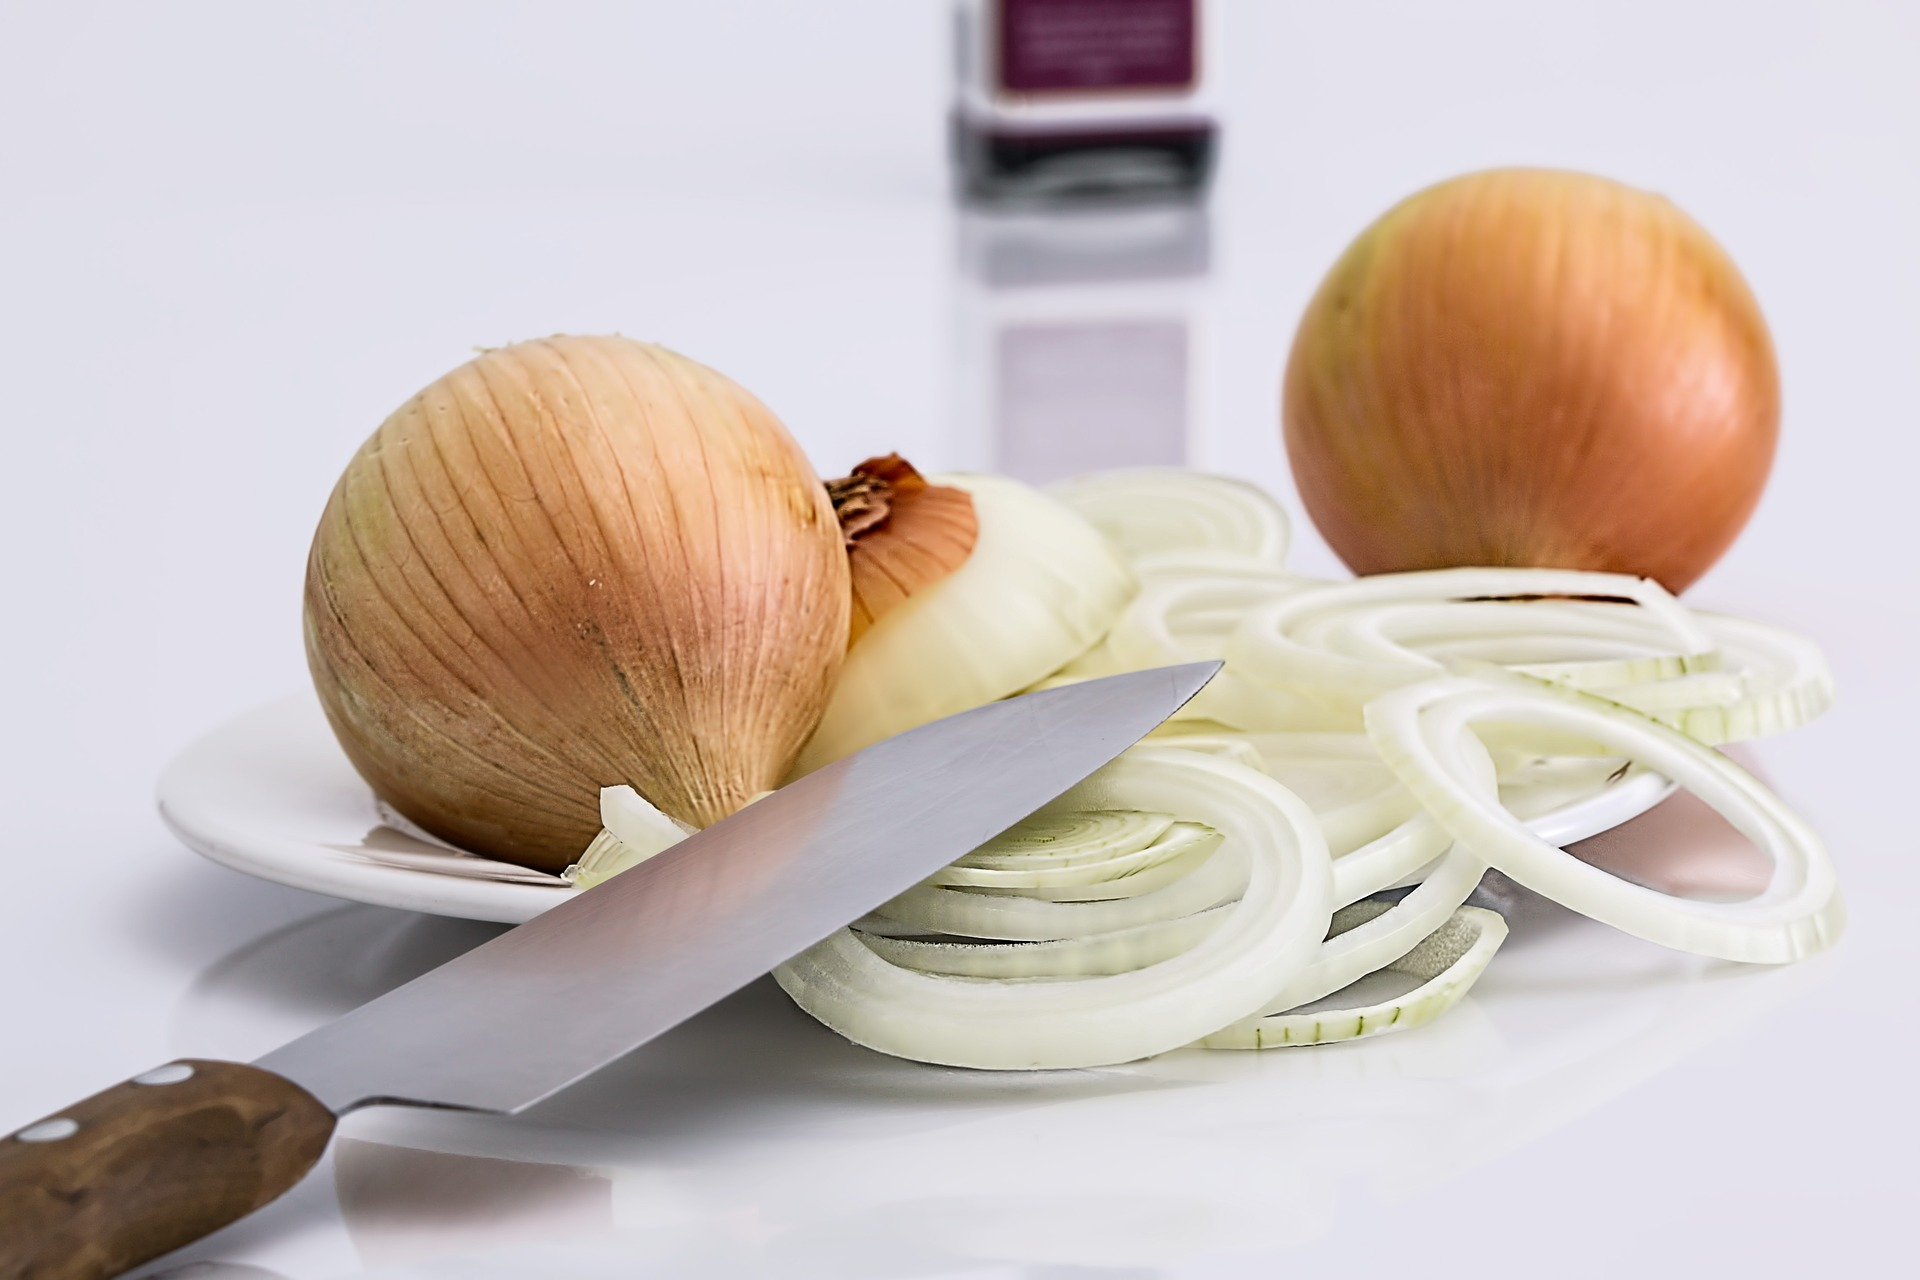 https://pixabay.com/en/onion-slice-knife-food-ingredient-647525/